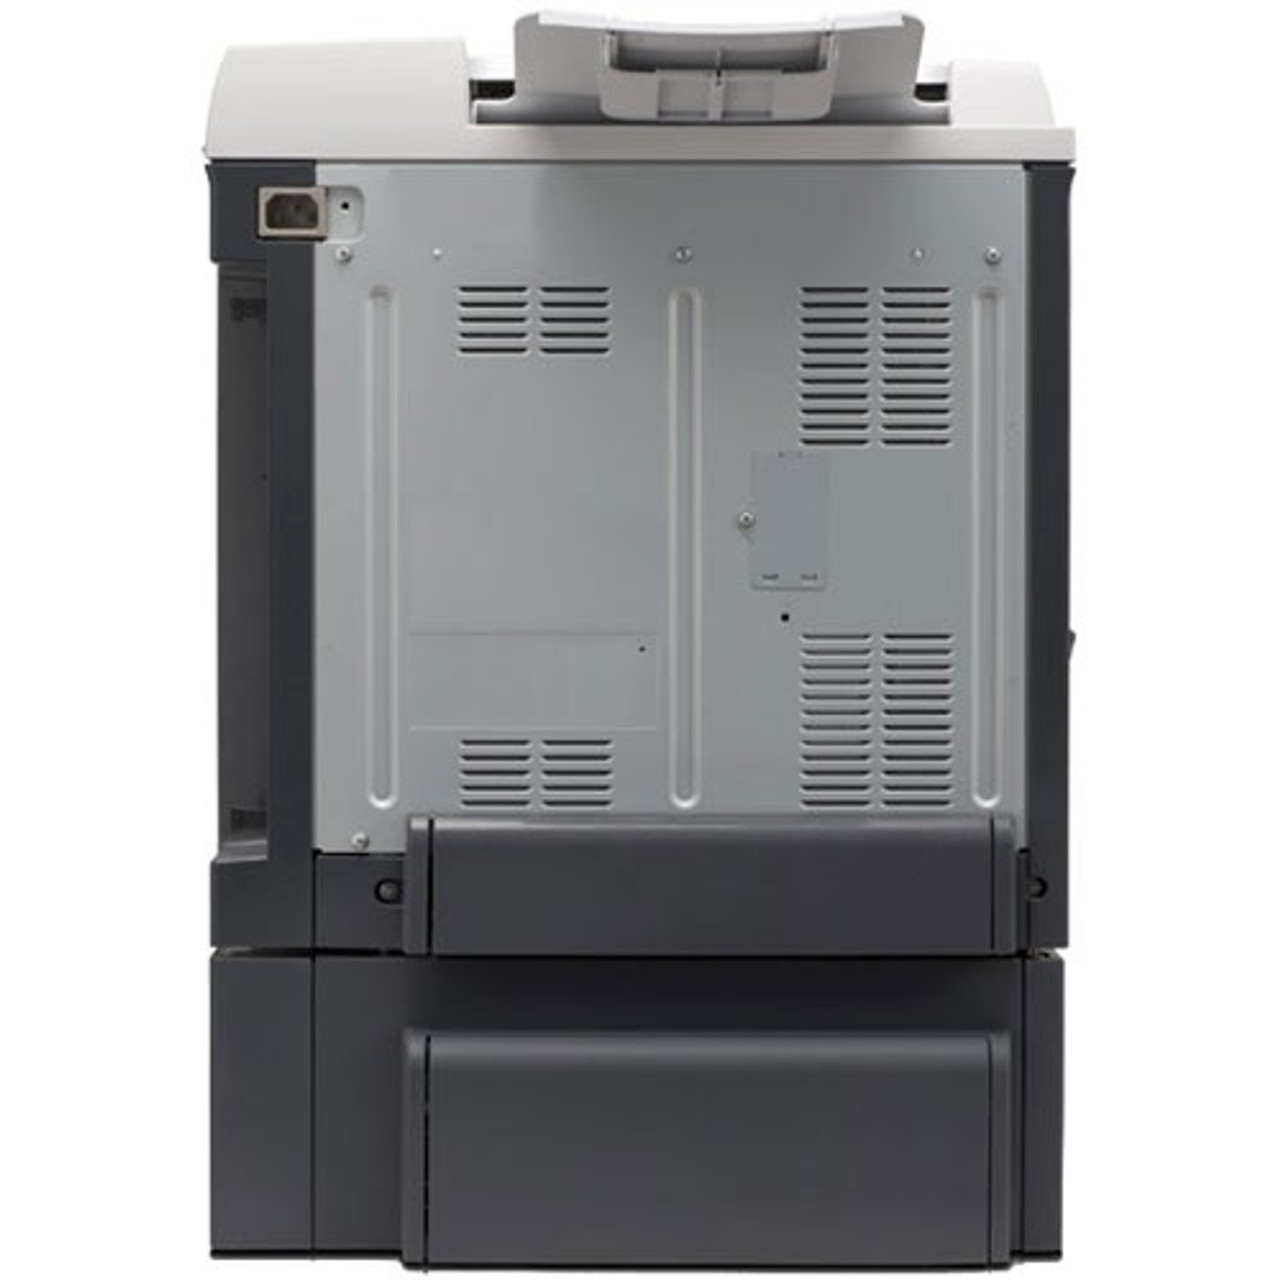 HP Color LaserJet 3800dtn - Q5984A - HP Laser Printer for sale